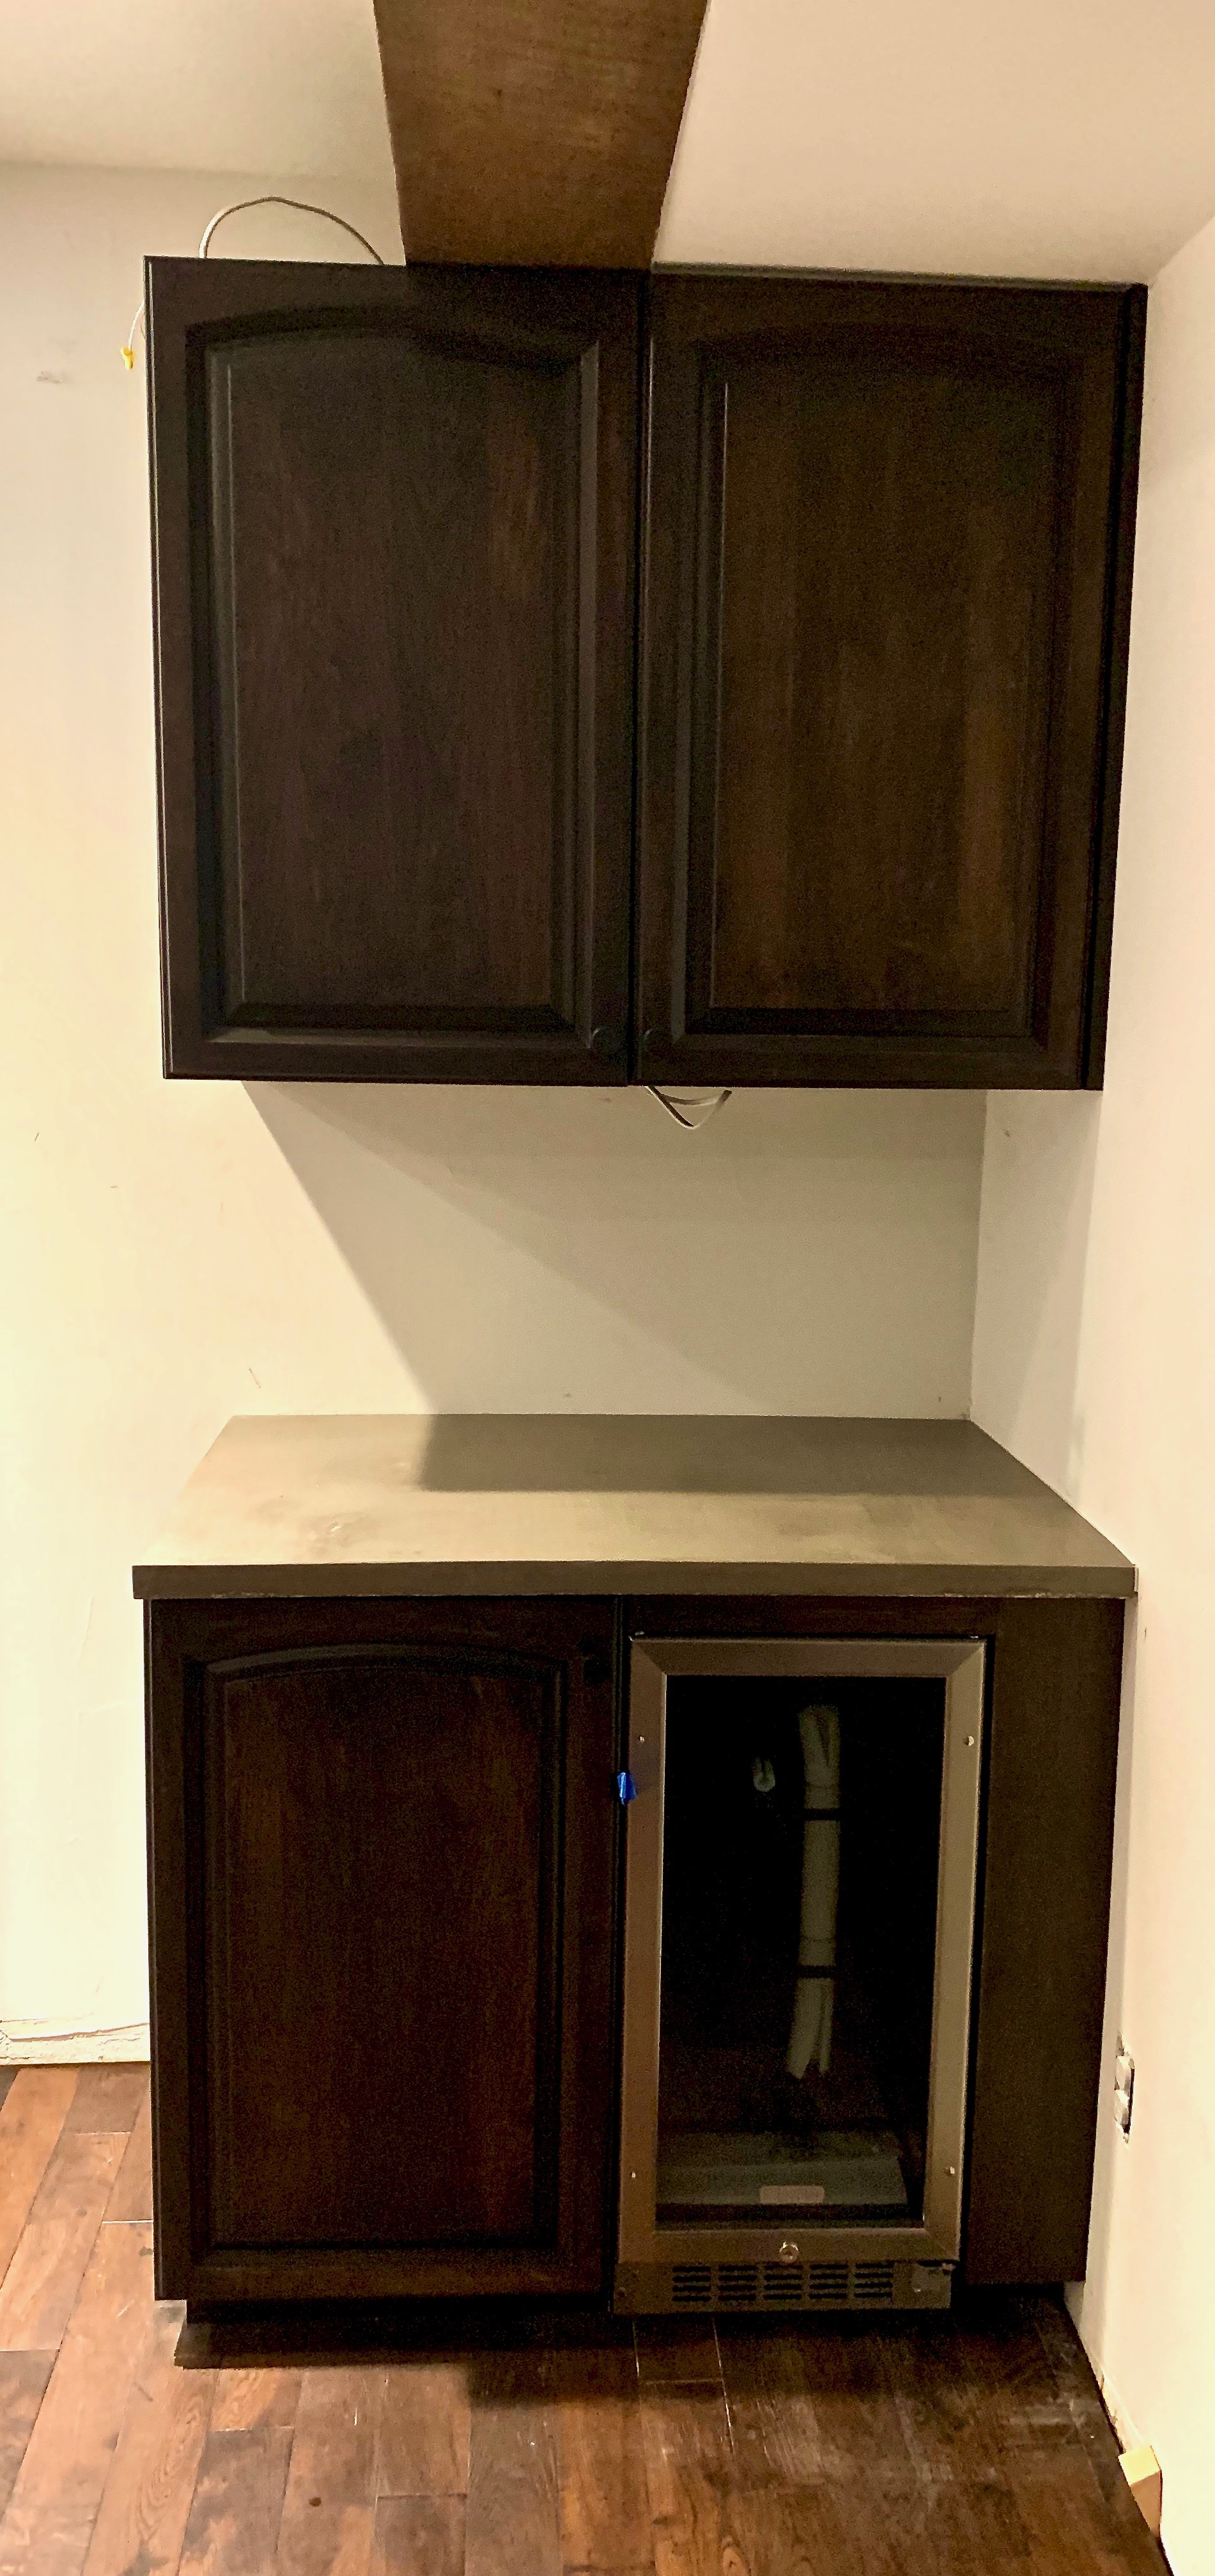 Cabinets with concrete countertops and built in fridge.